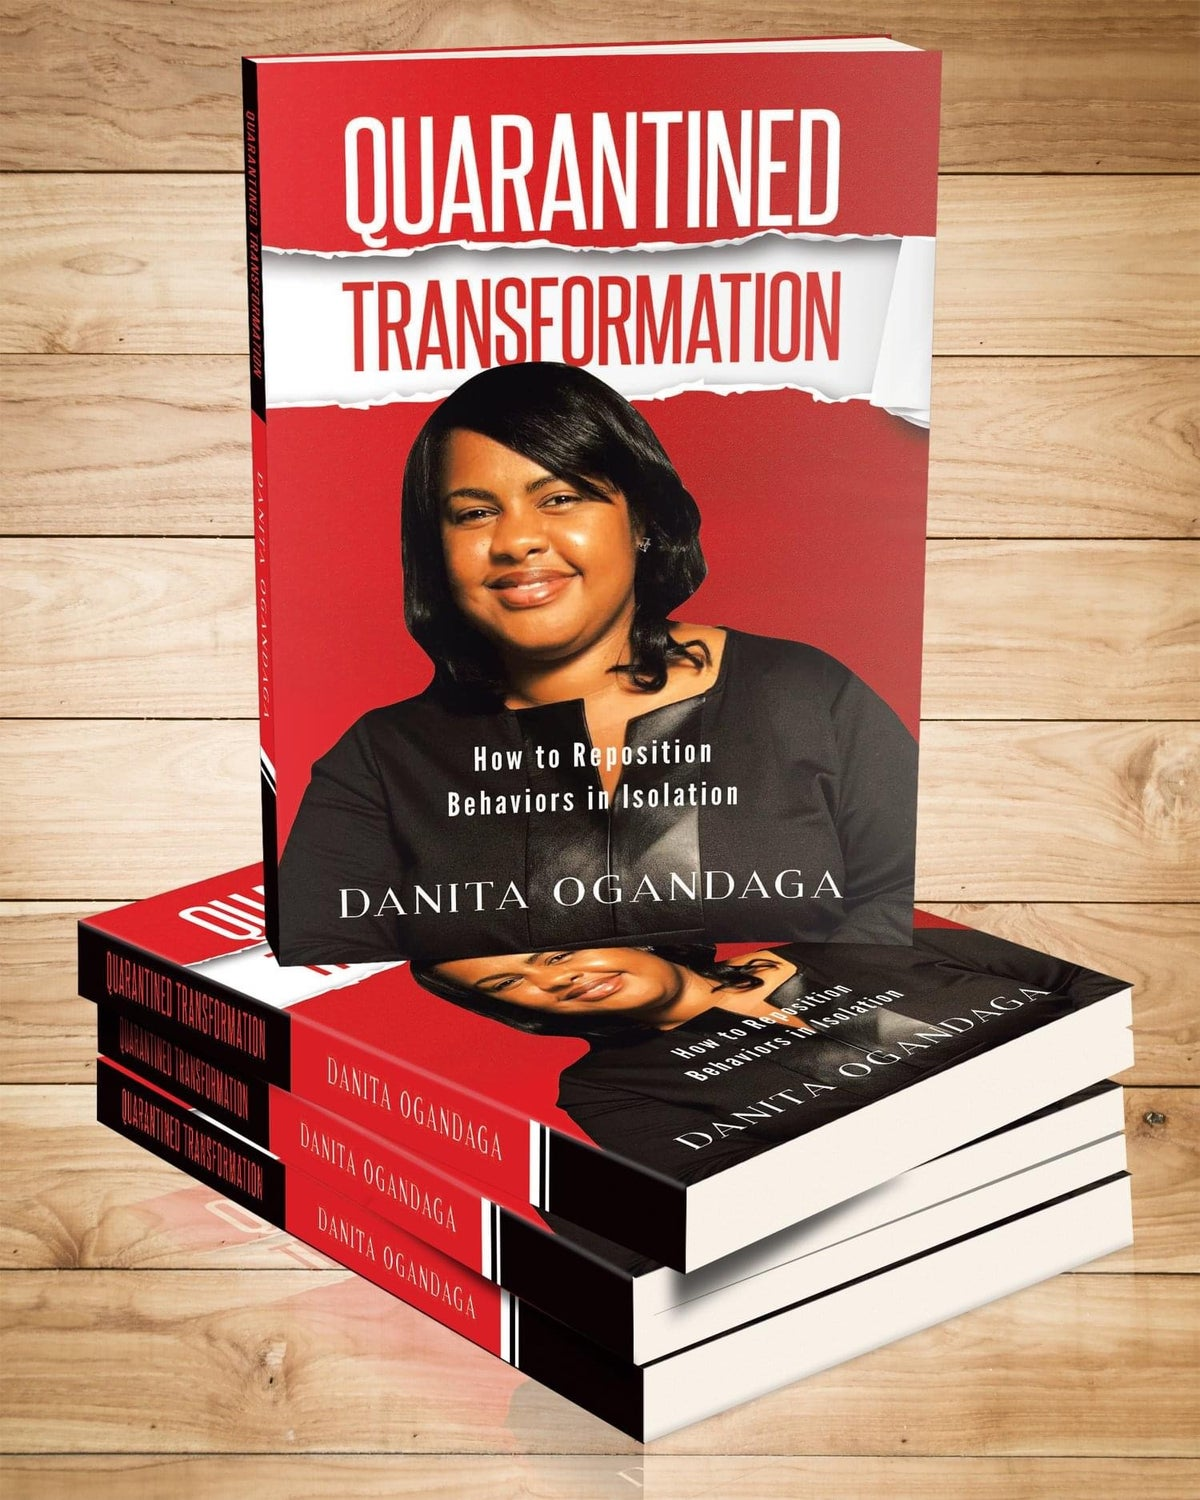 Image of Quarantined Transformation: How to Reposition Behaviors in Isolation